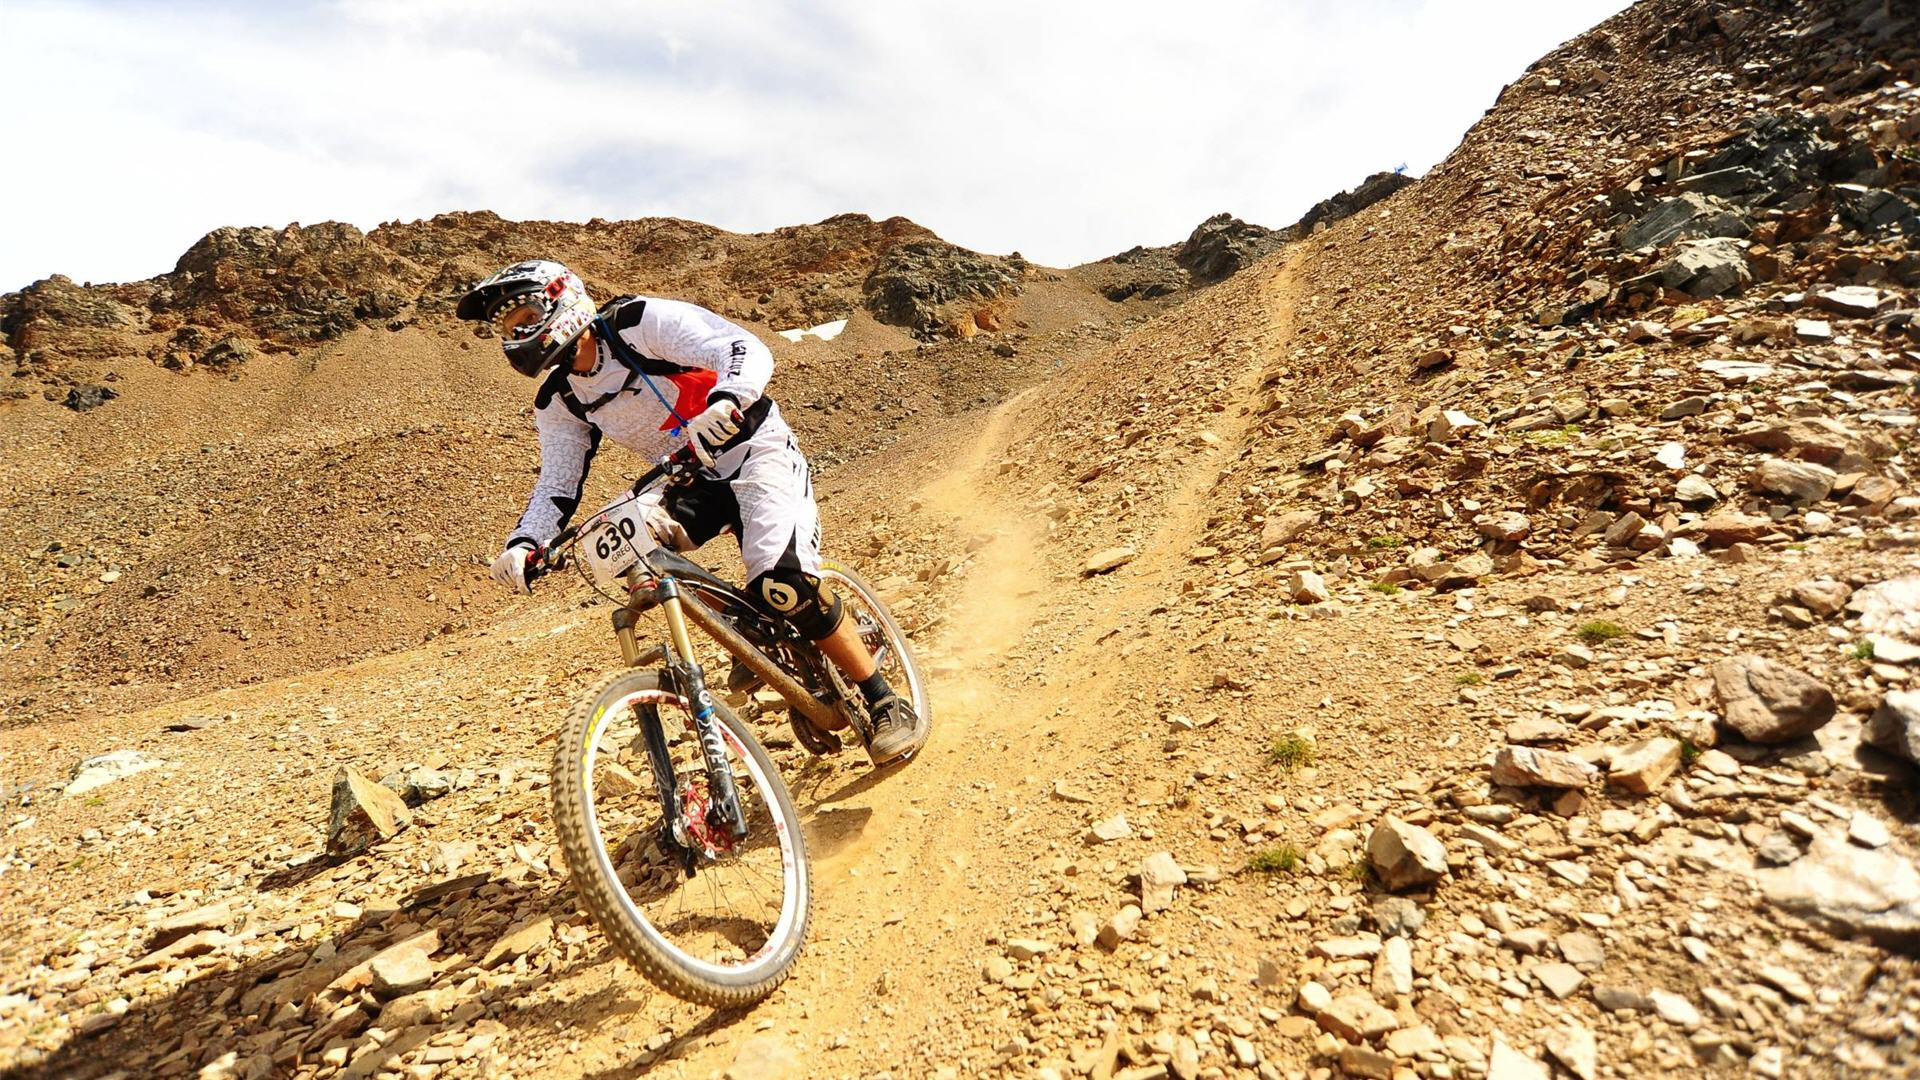 Awesome Downhill Wallpaper 35544 1920x1080 px HDWallSourcecom